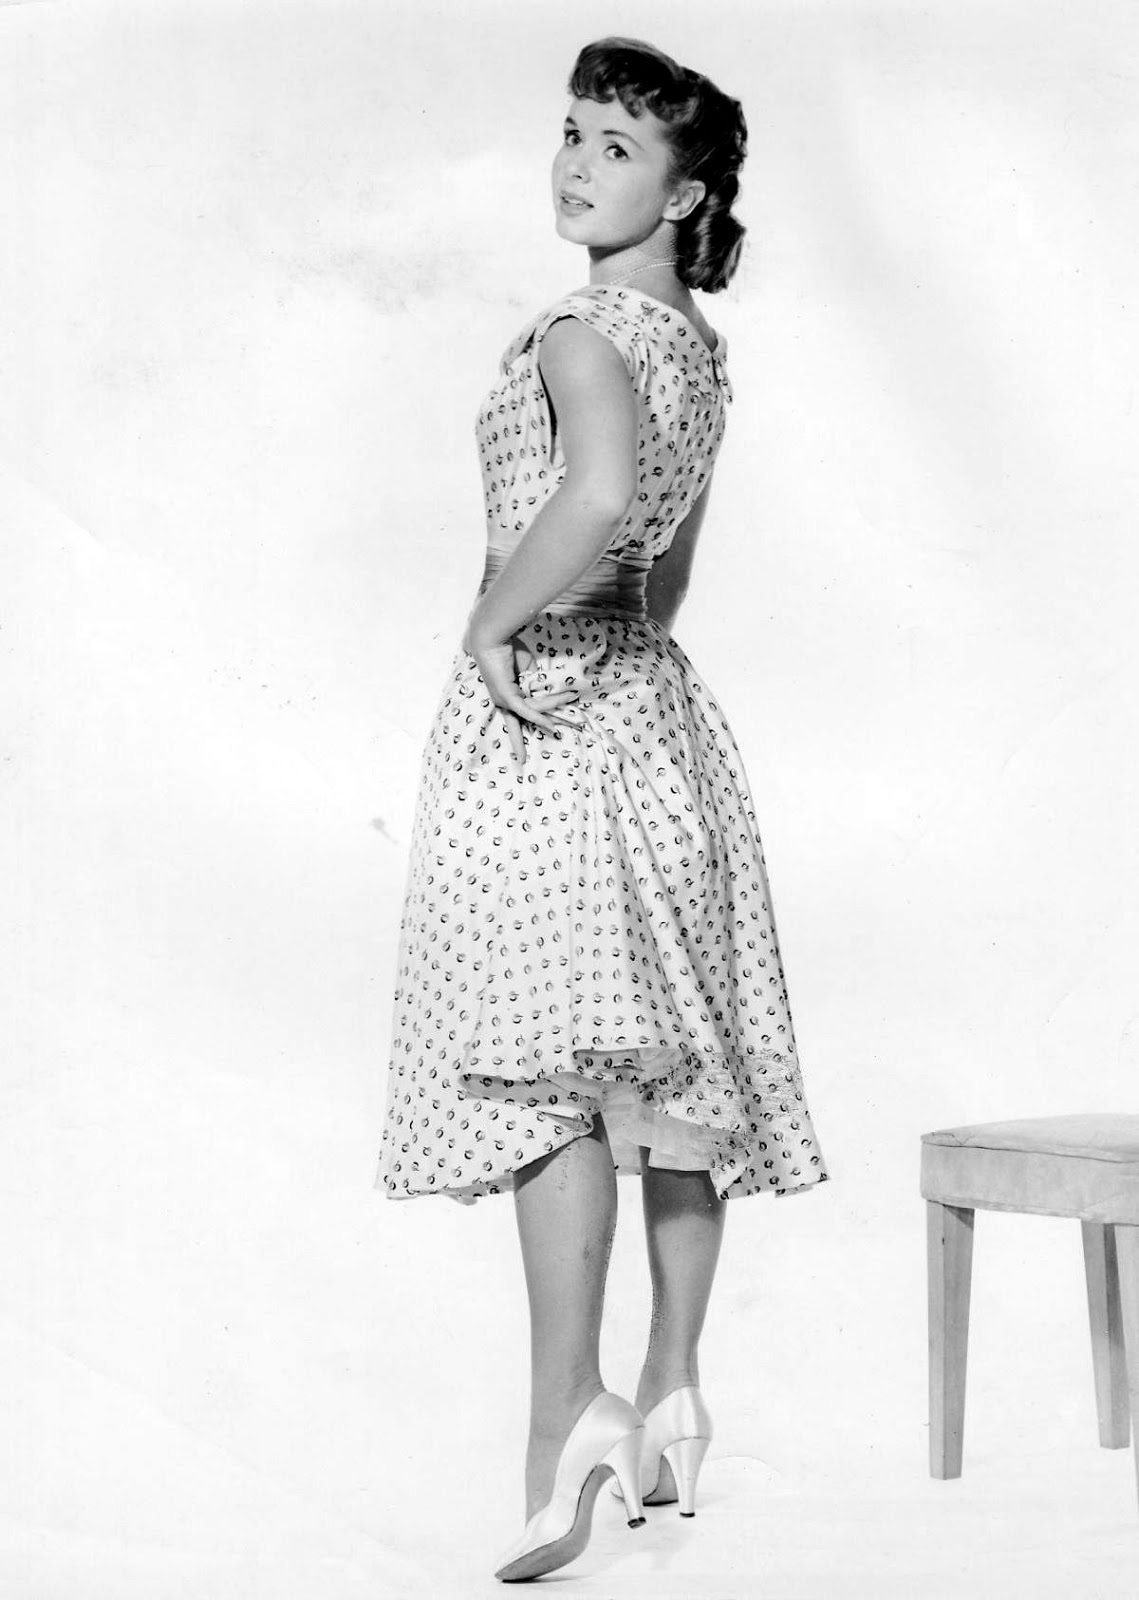 40 Wonderful Black and White Portrait Photos of Debbie Reynolds in the 1950s and 1960s ~ vintage ...